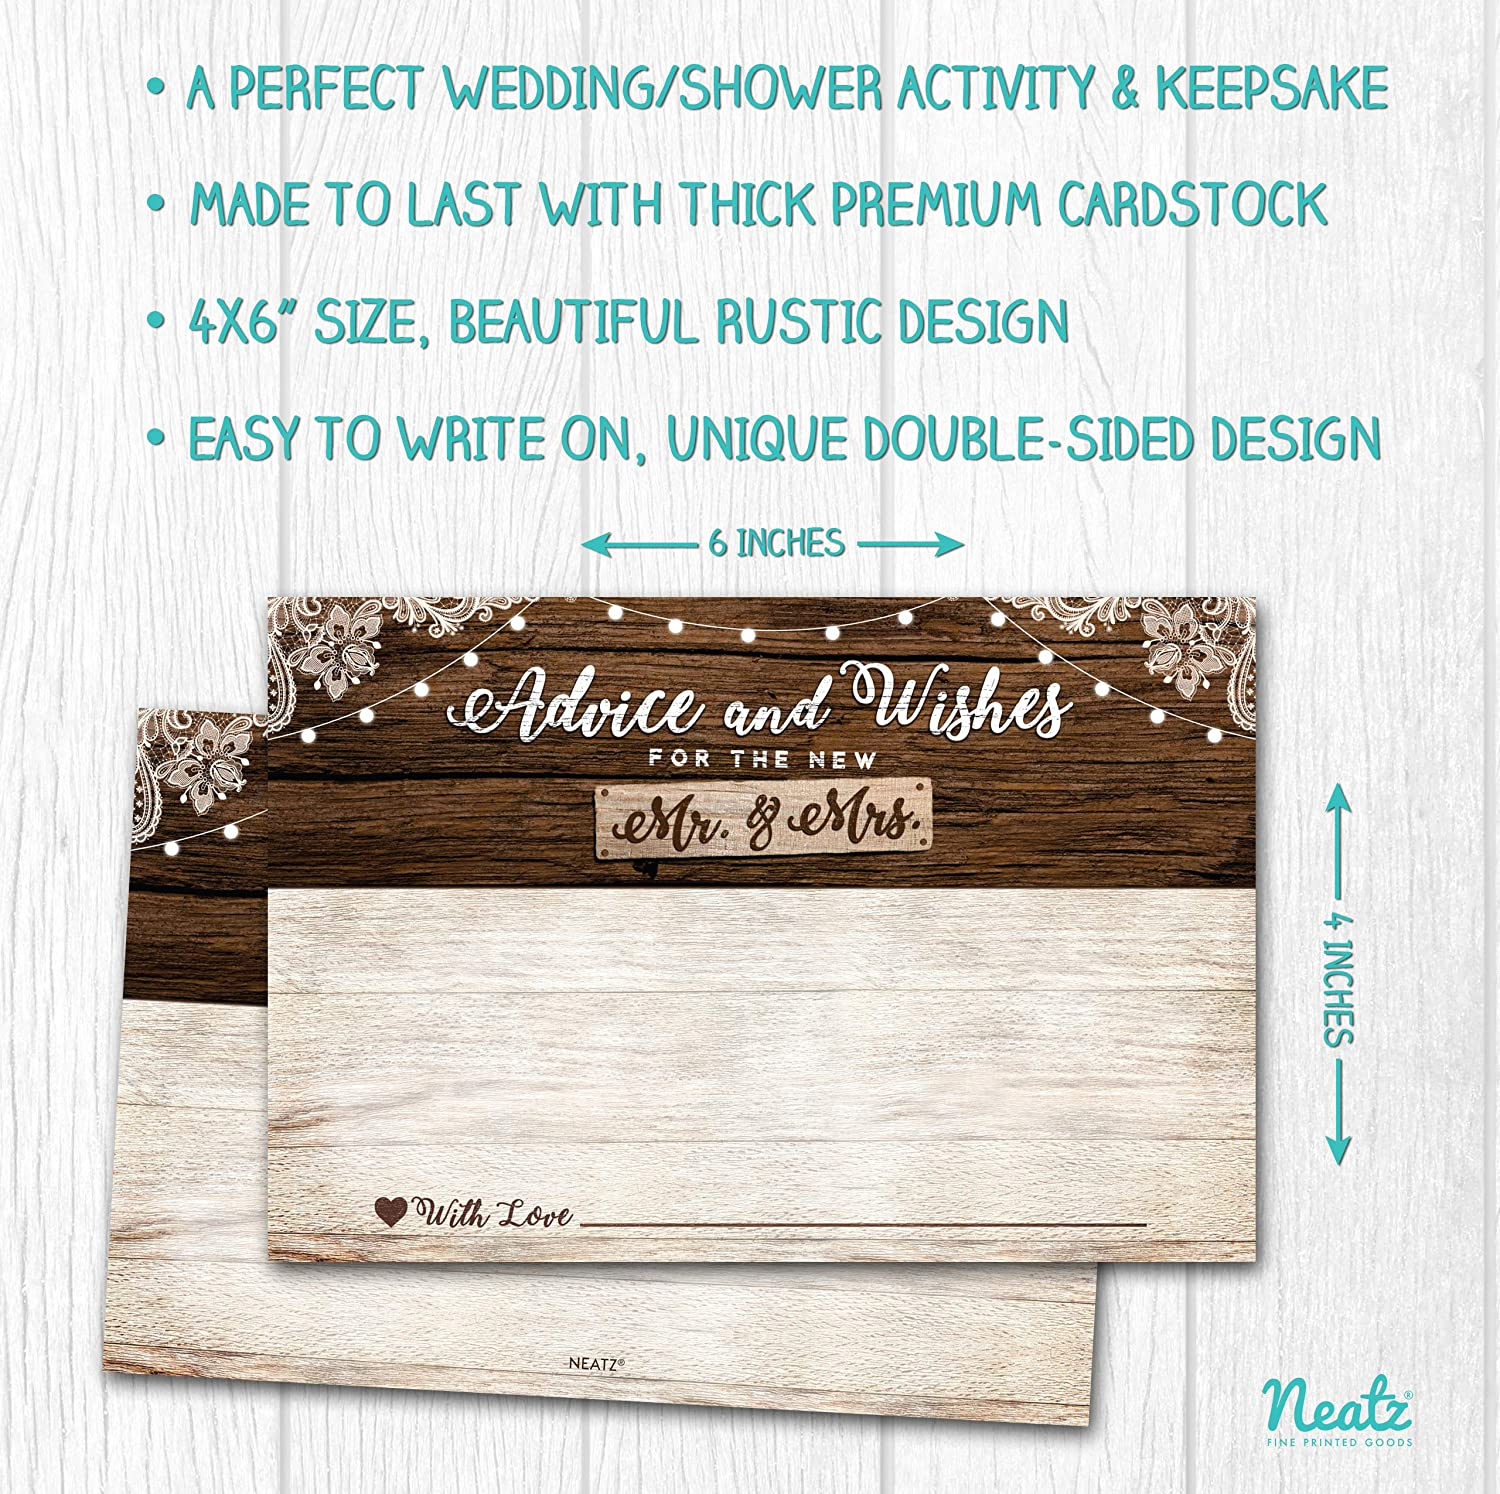 Bridal Shower Games Rustic Wedding Decorations Bridal Shower Decorations 50 Rustic Wedding Advice Cards /& Well Wishes for the Bride and Groom